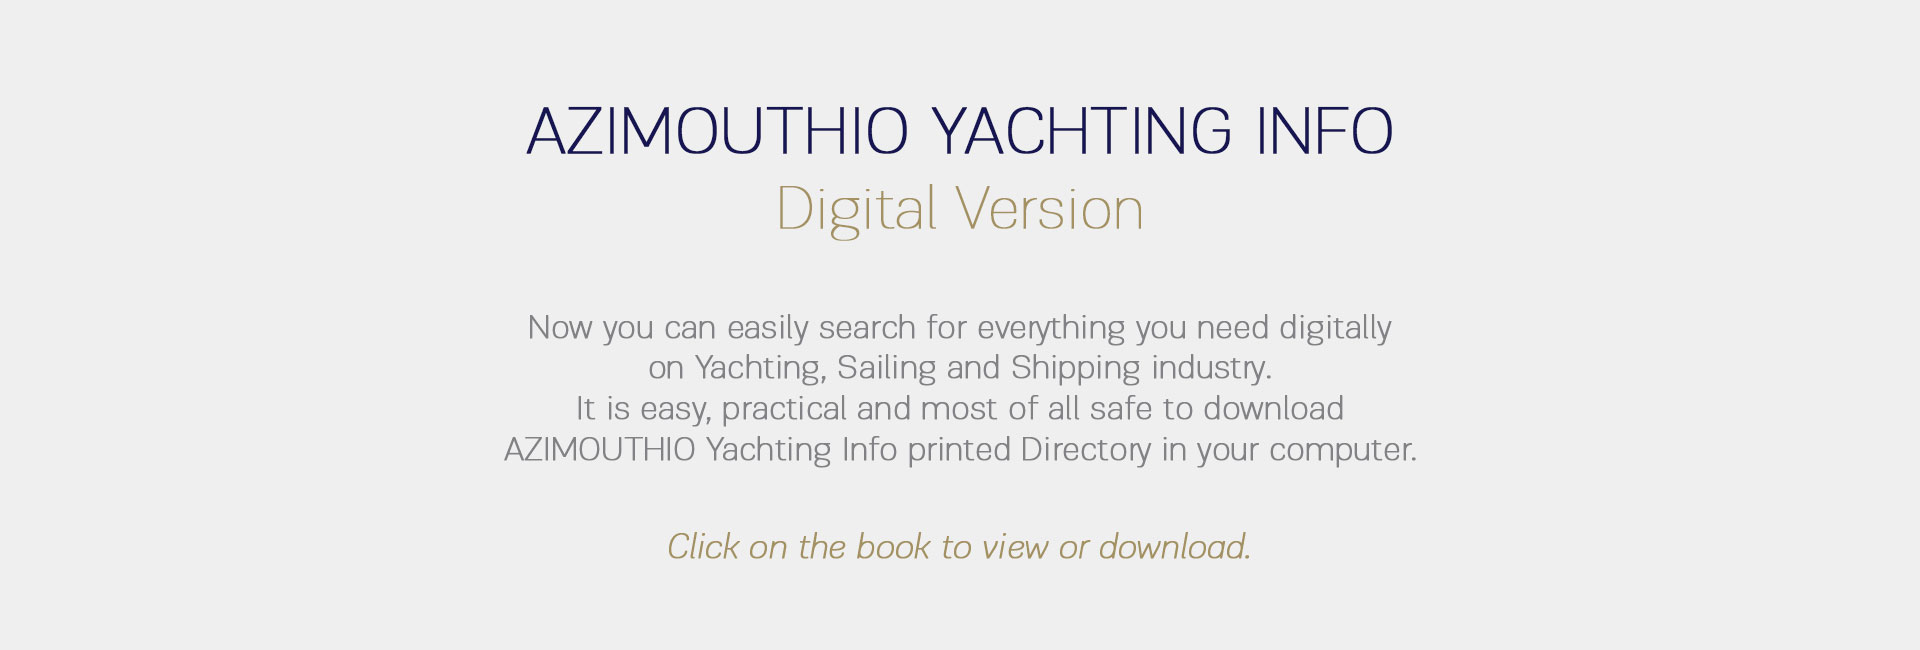 Digital Book by Azimouthio Yachting Info directory